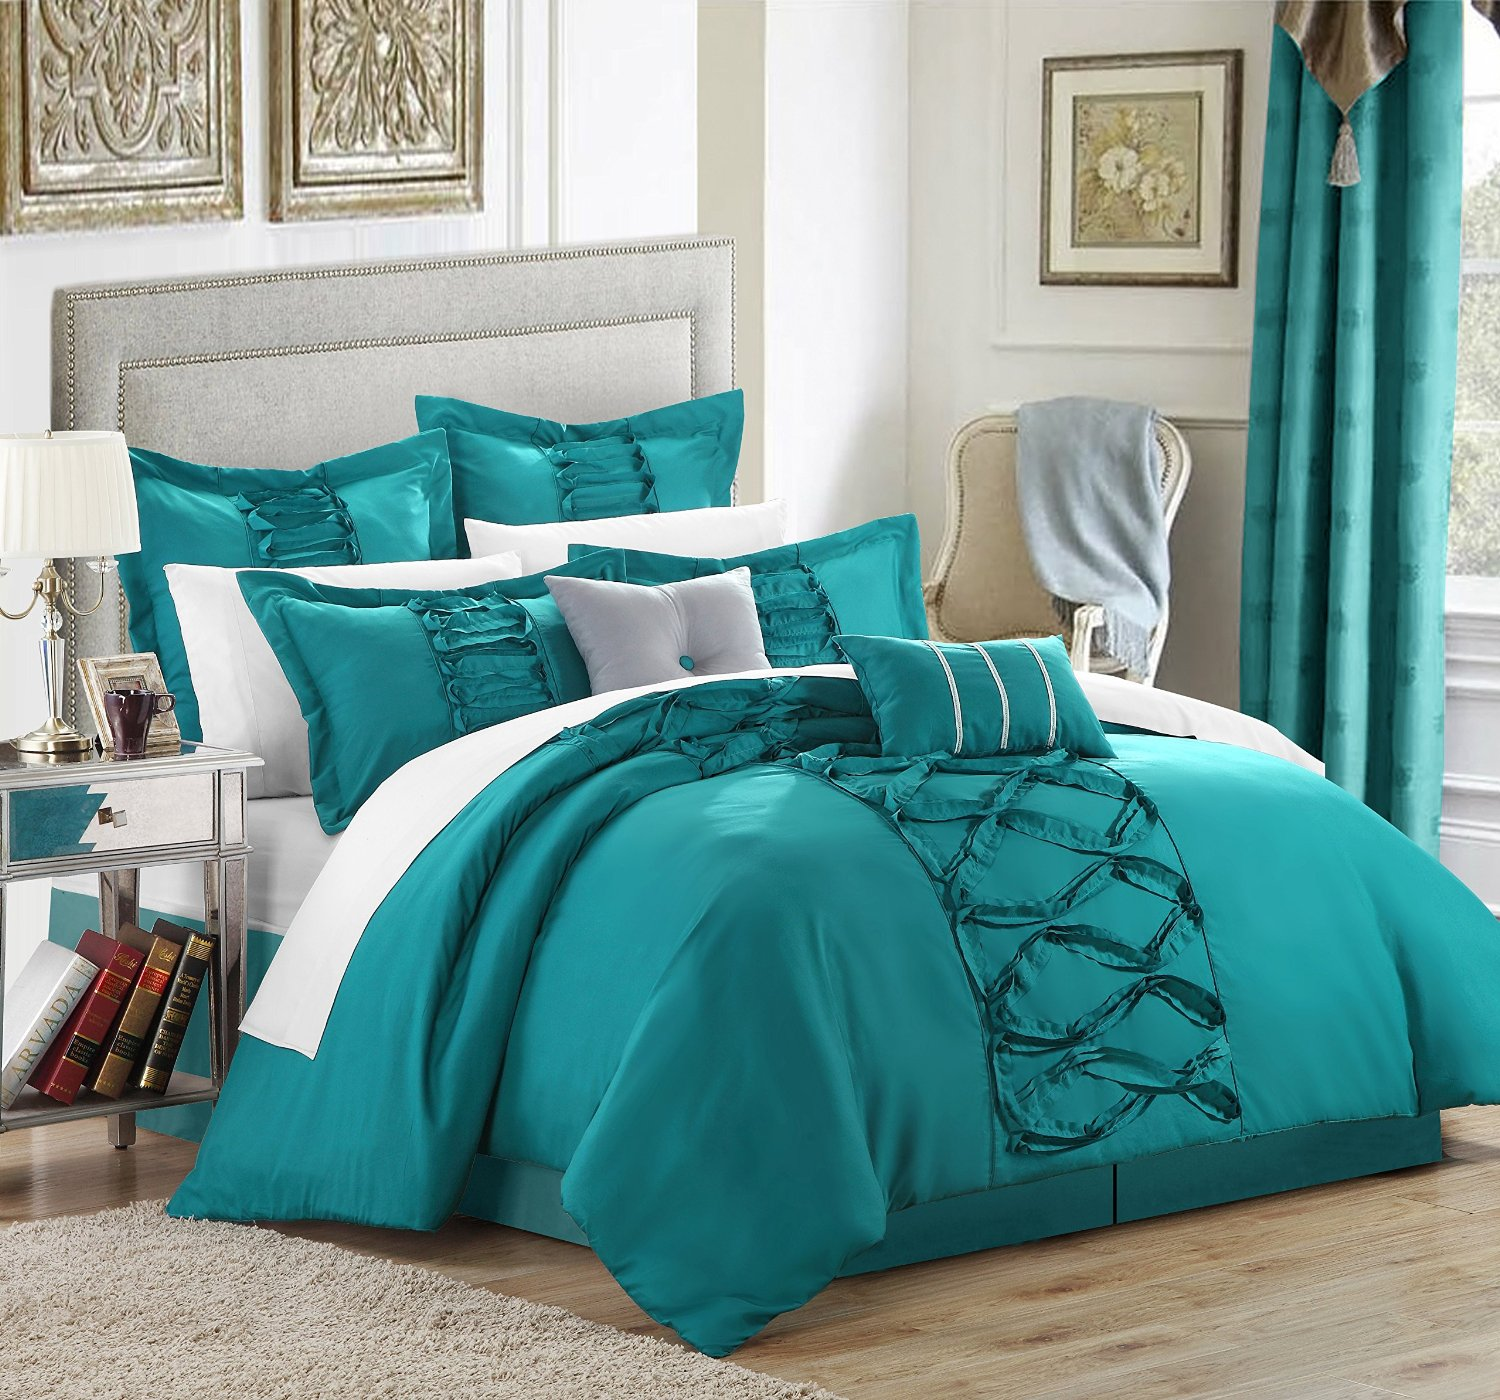 Ruffled Teal Comforter Set